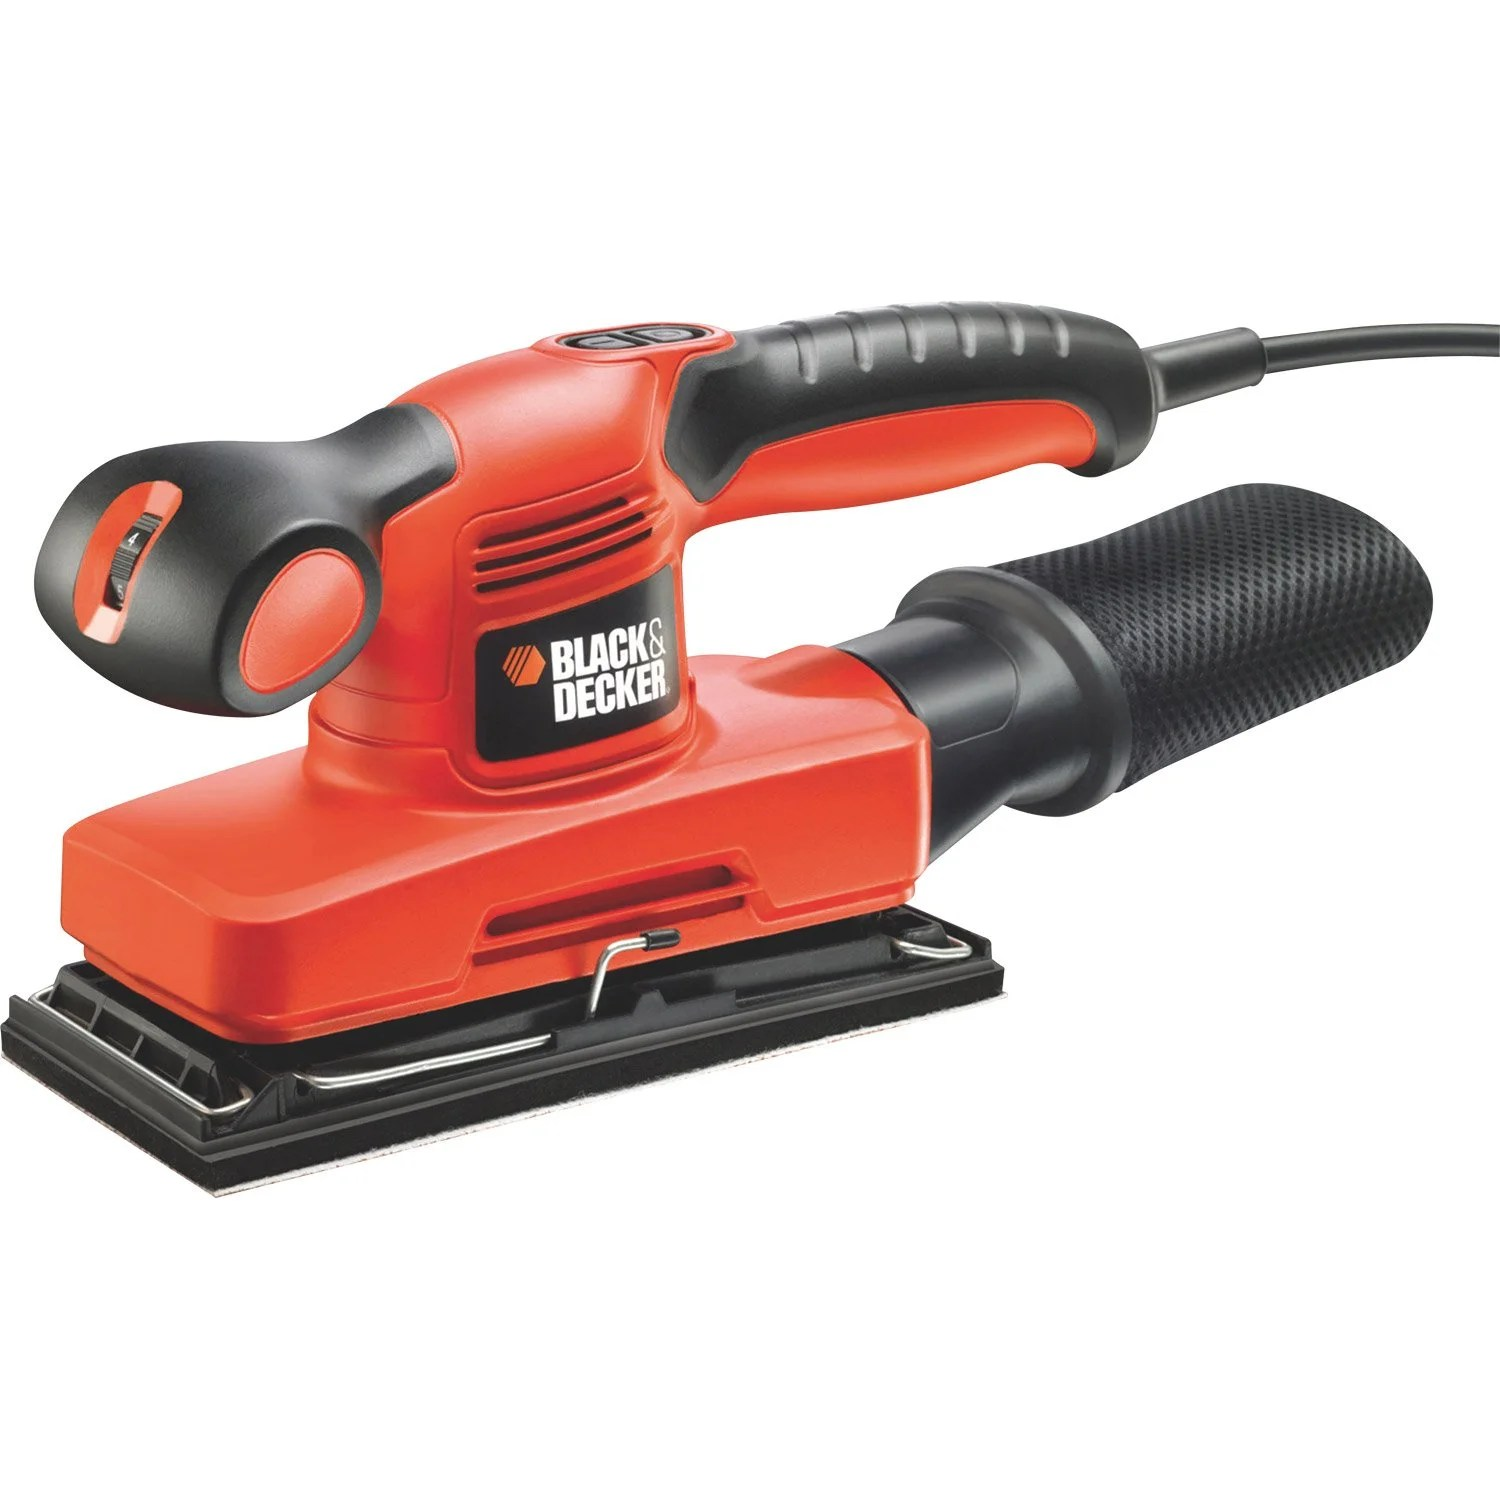 Ponceuse Orbitale Brico Depot.html Ponceuse Vibrante Filaire Black And Decker Ka320eka 240 W